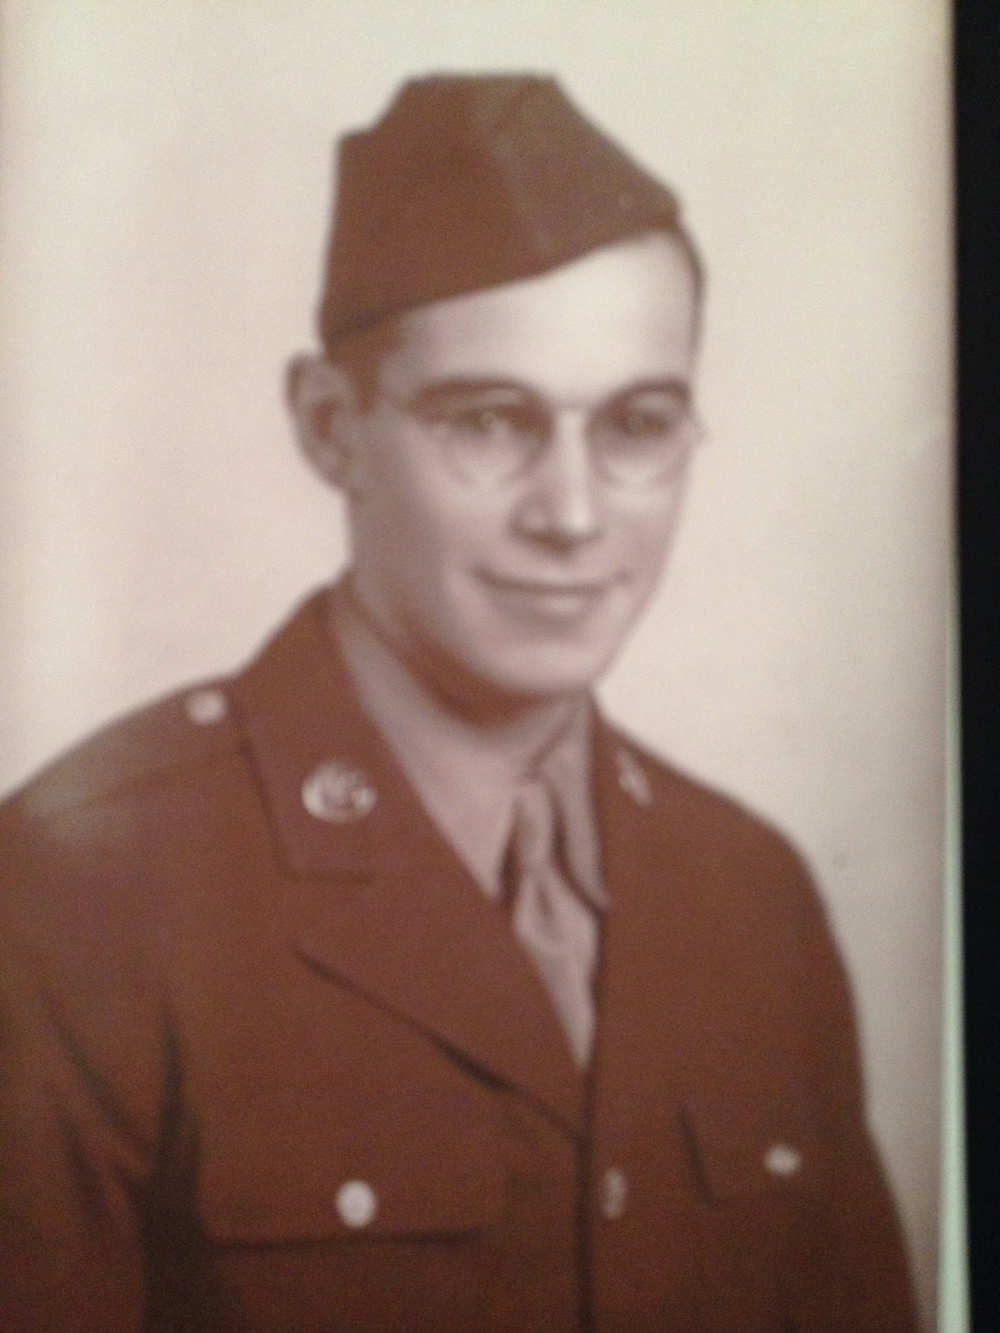 TECHNICAL SERGEANT PAUL E. BOYER IN HIS OFFICIAL ARMY AIR FORCES PHOTOGRAPH.  PHOTO  COURTESY OF PAUL BOYER.